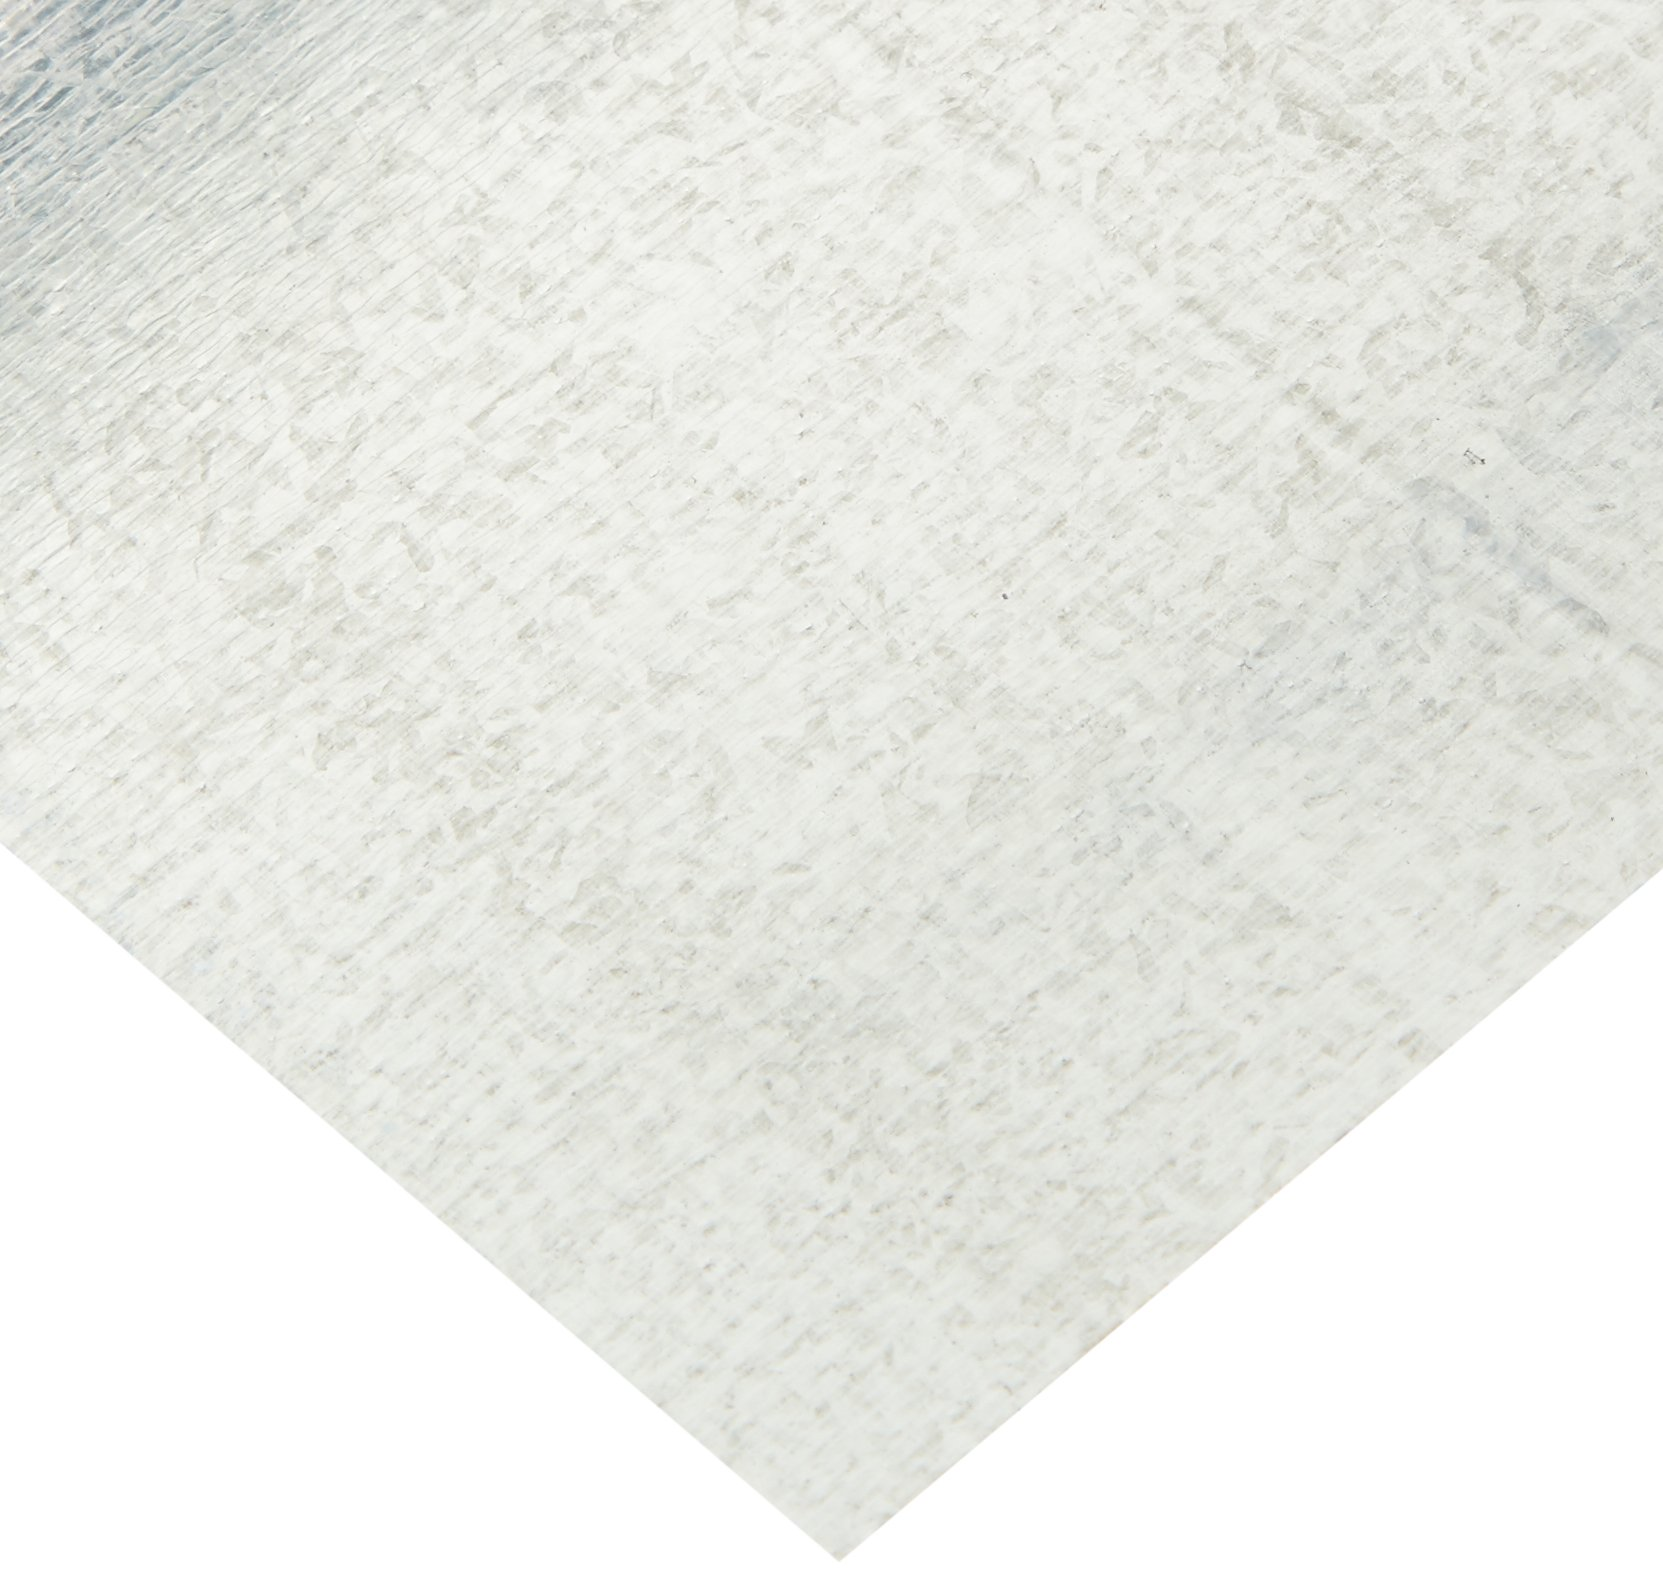 AMERIMAX HOME PRODUCTS  70410 10-Inch x 10-Feet Galvanized Flashing